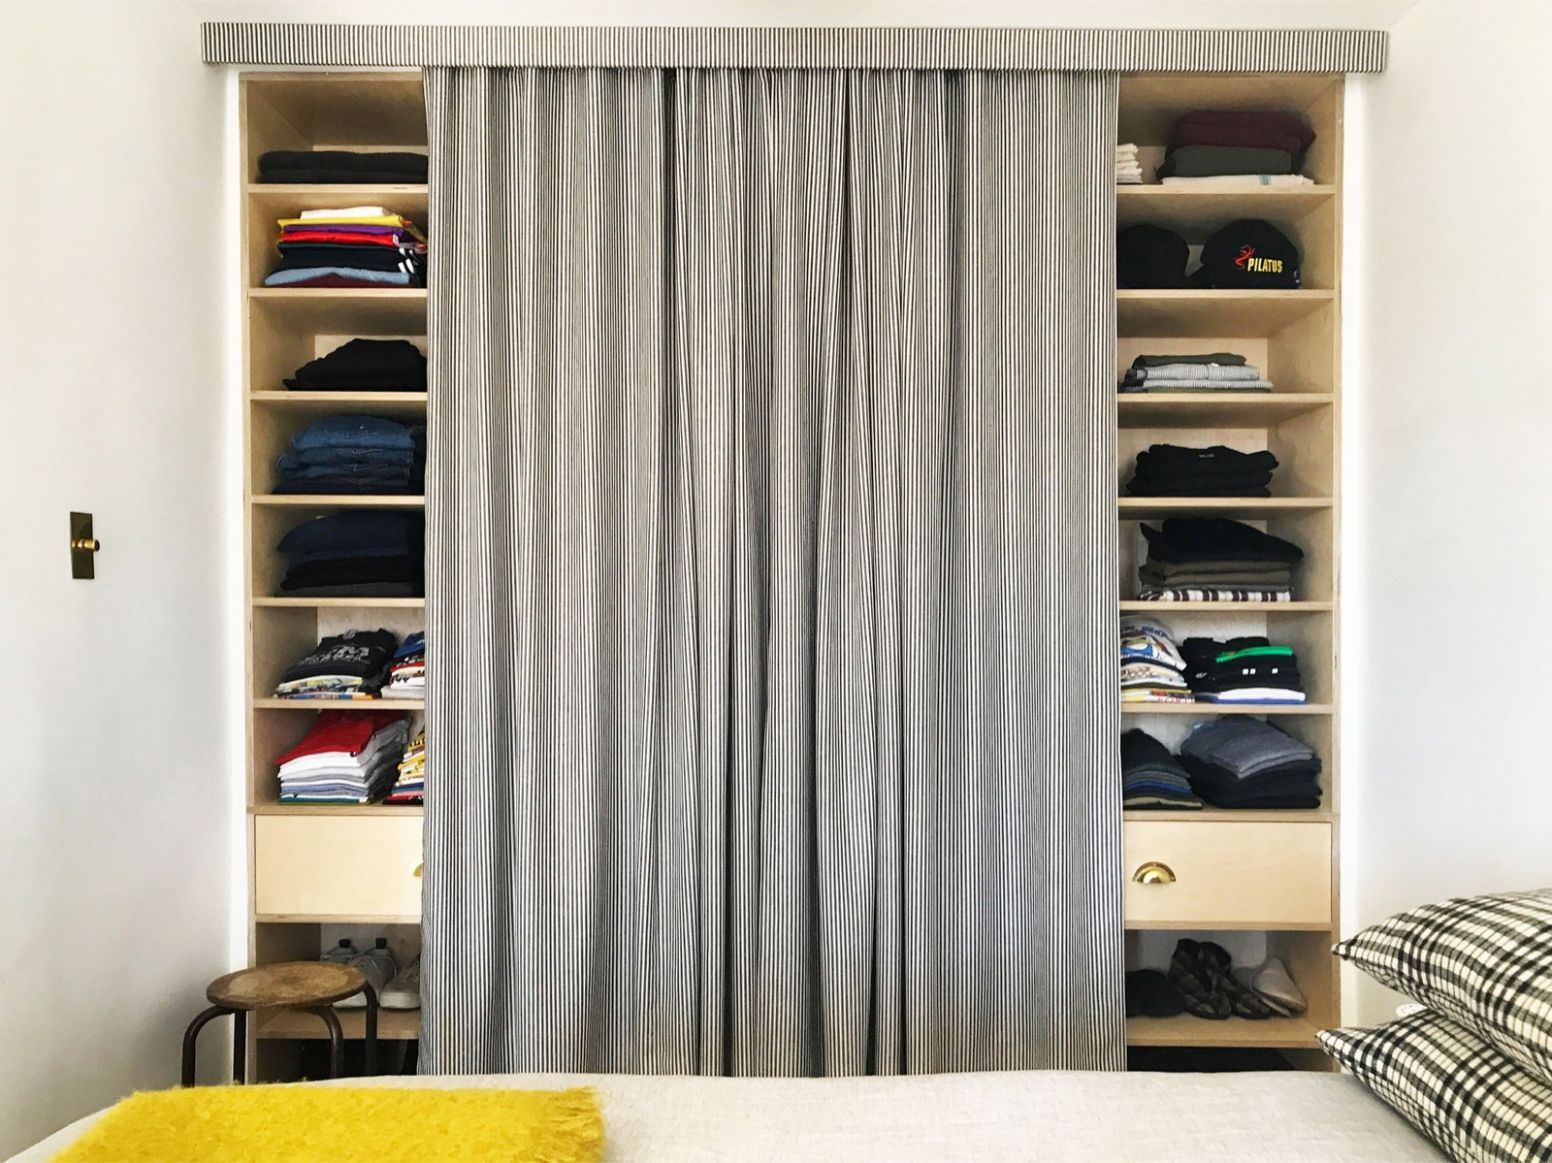 Ditch Your Closet Doors for a Tailored Curtain   Architectural Digest - closet curtain ideas